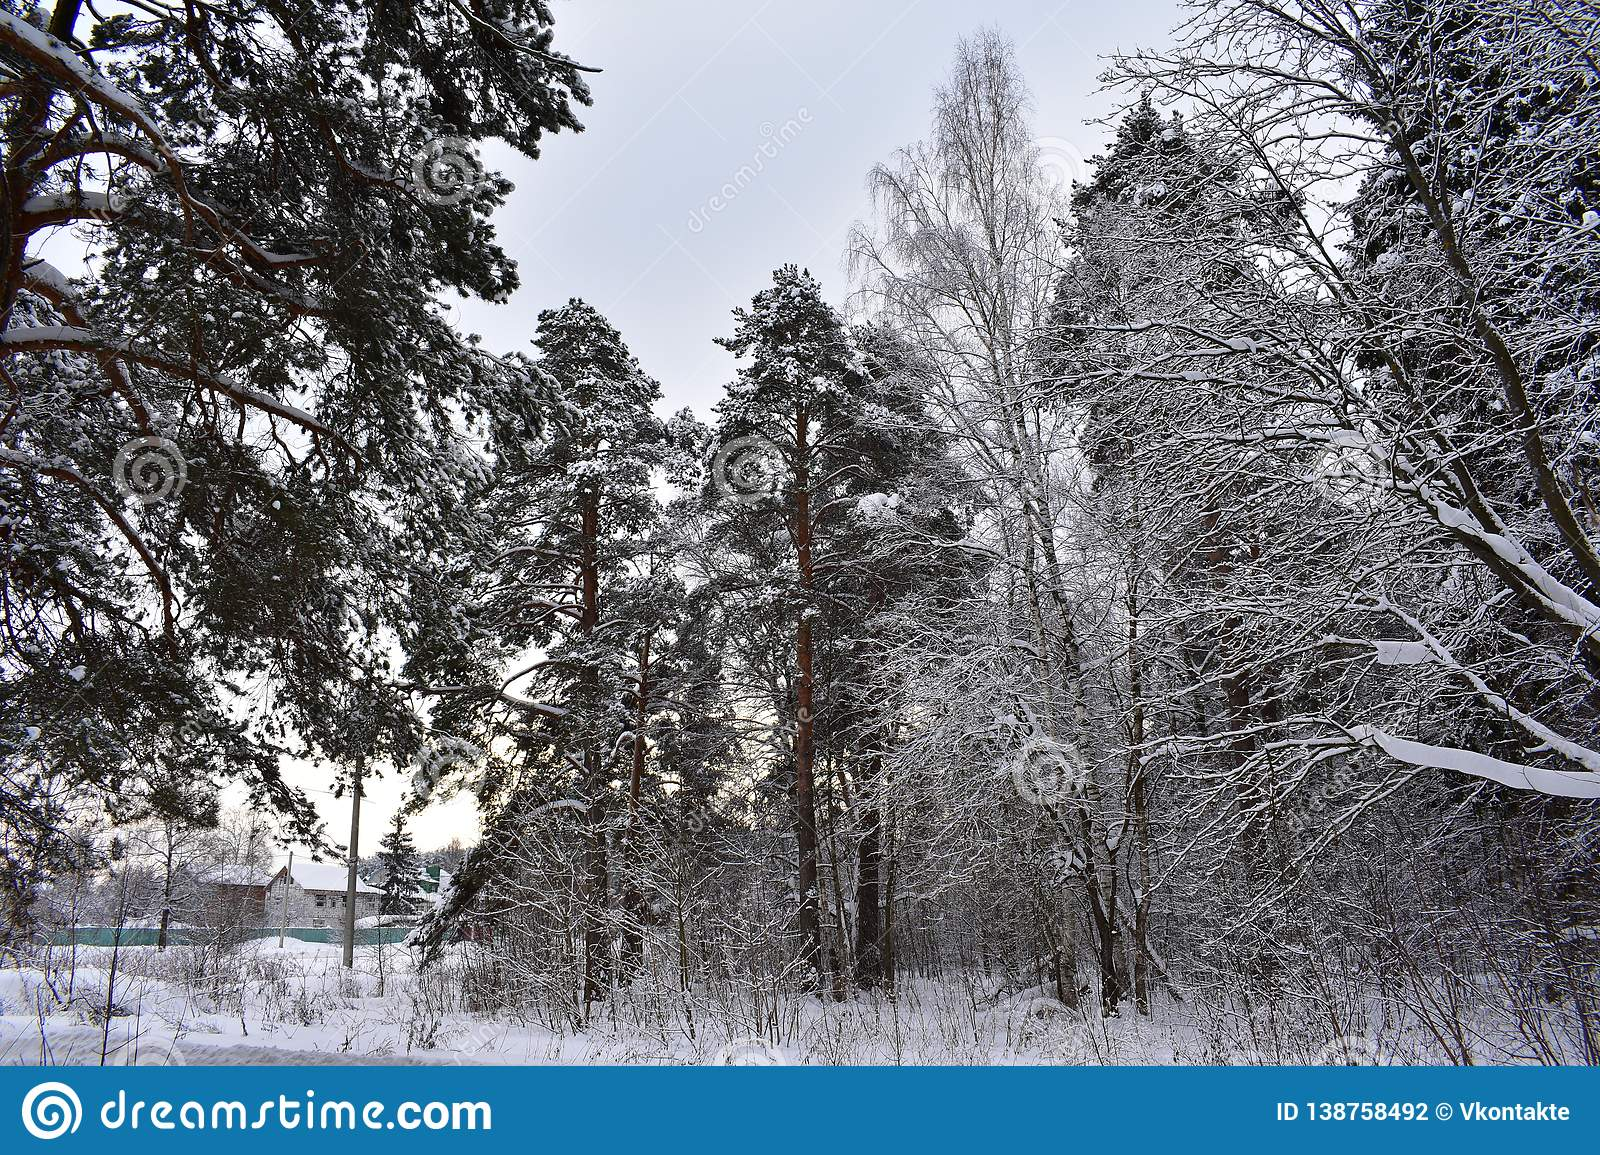 Cold winter on the outskirts of the city begins winter forest